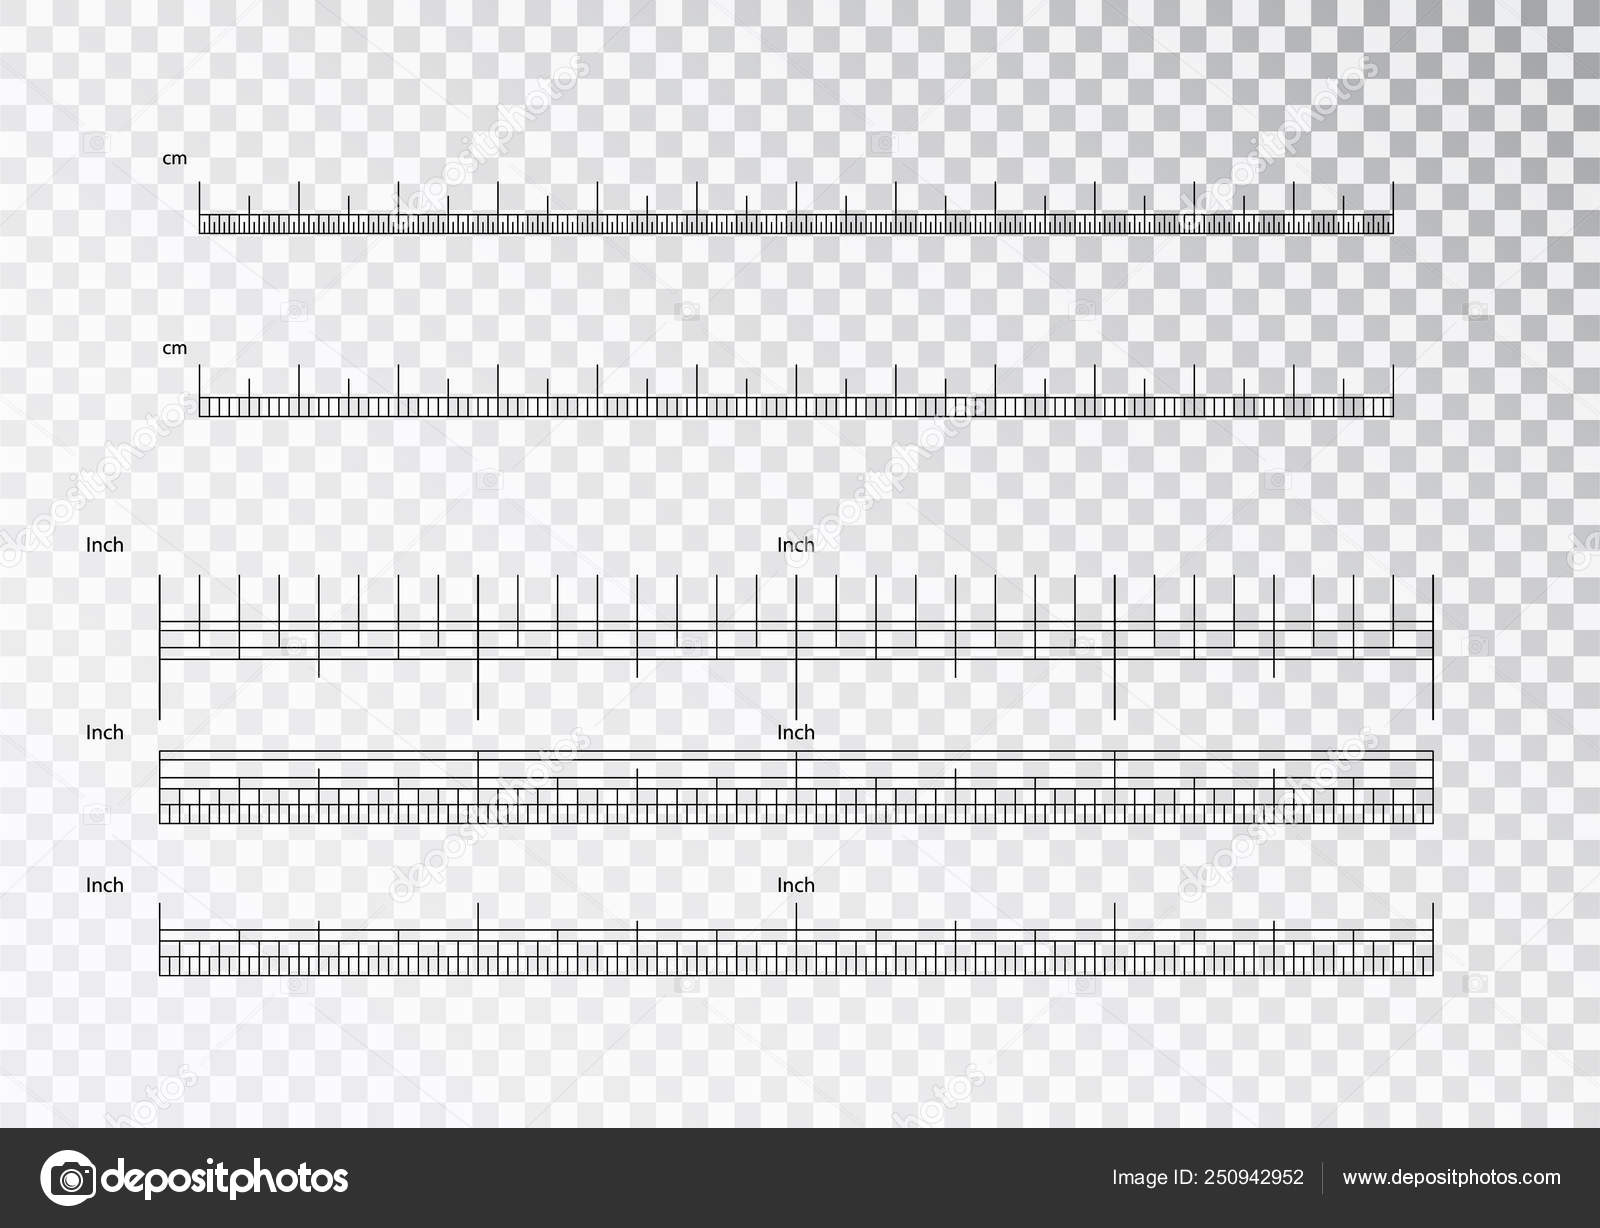 Inch And Metric Rulers Centimeters And Inches Measuring Scale Cm Metrics Indicator Precision Measurement Centimeter Icon Tools Of Measure Size Indication Ruler Tools Vector Isolated Stock Vector C Ann Zasimova 250942952